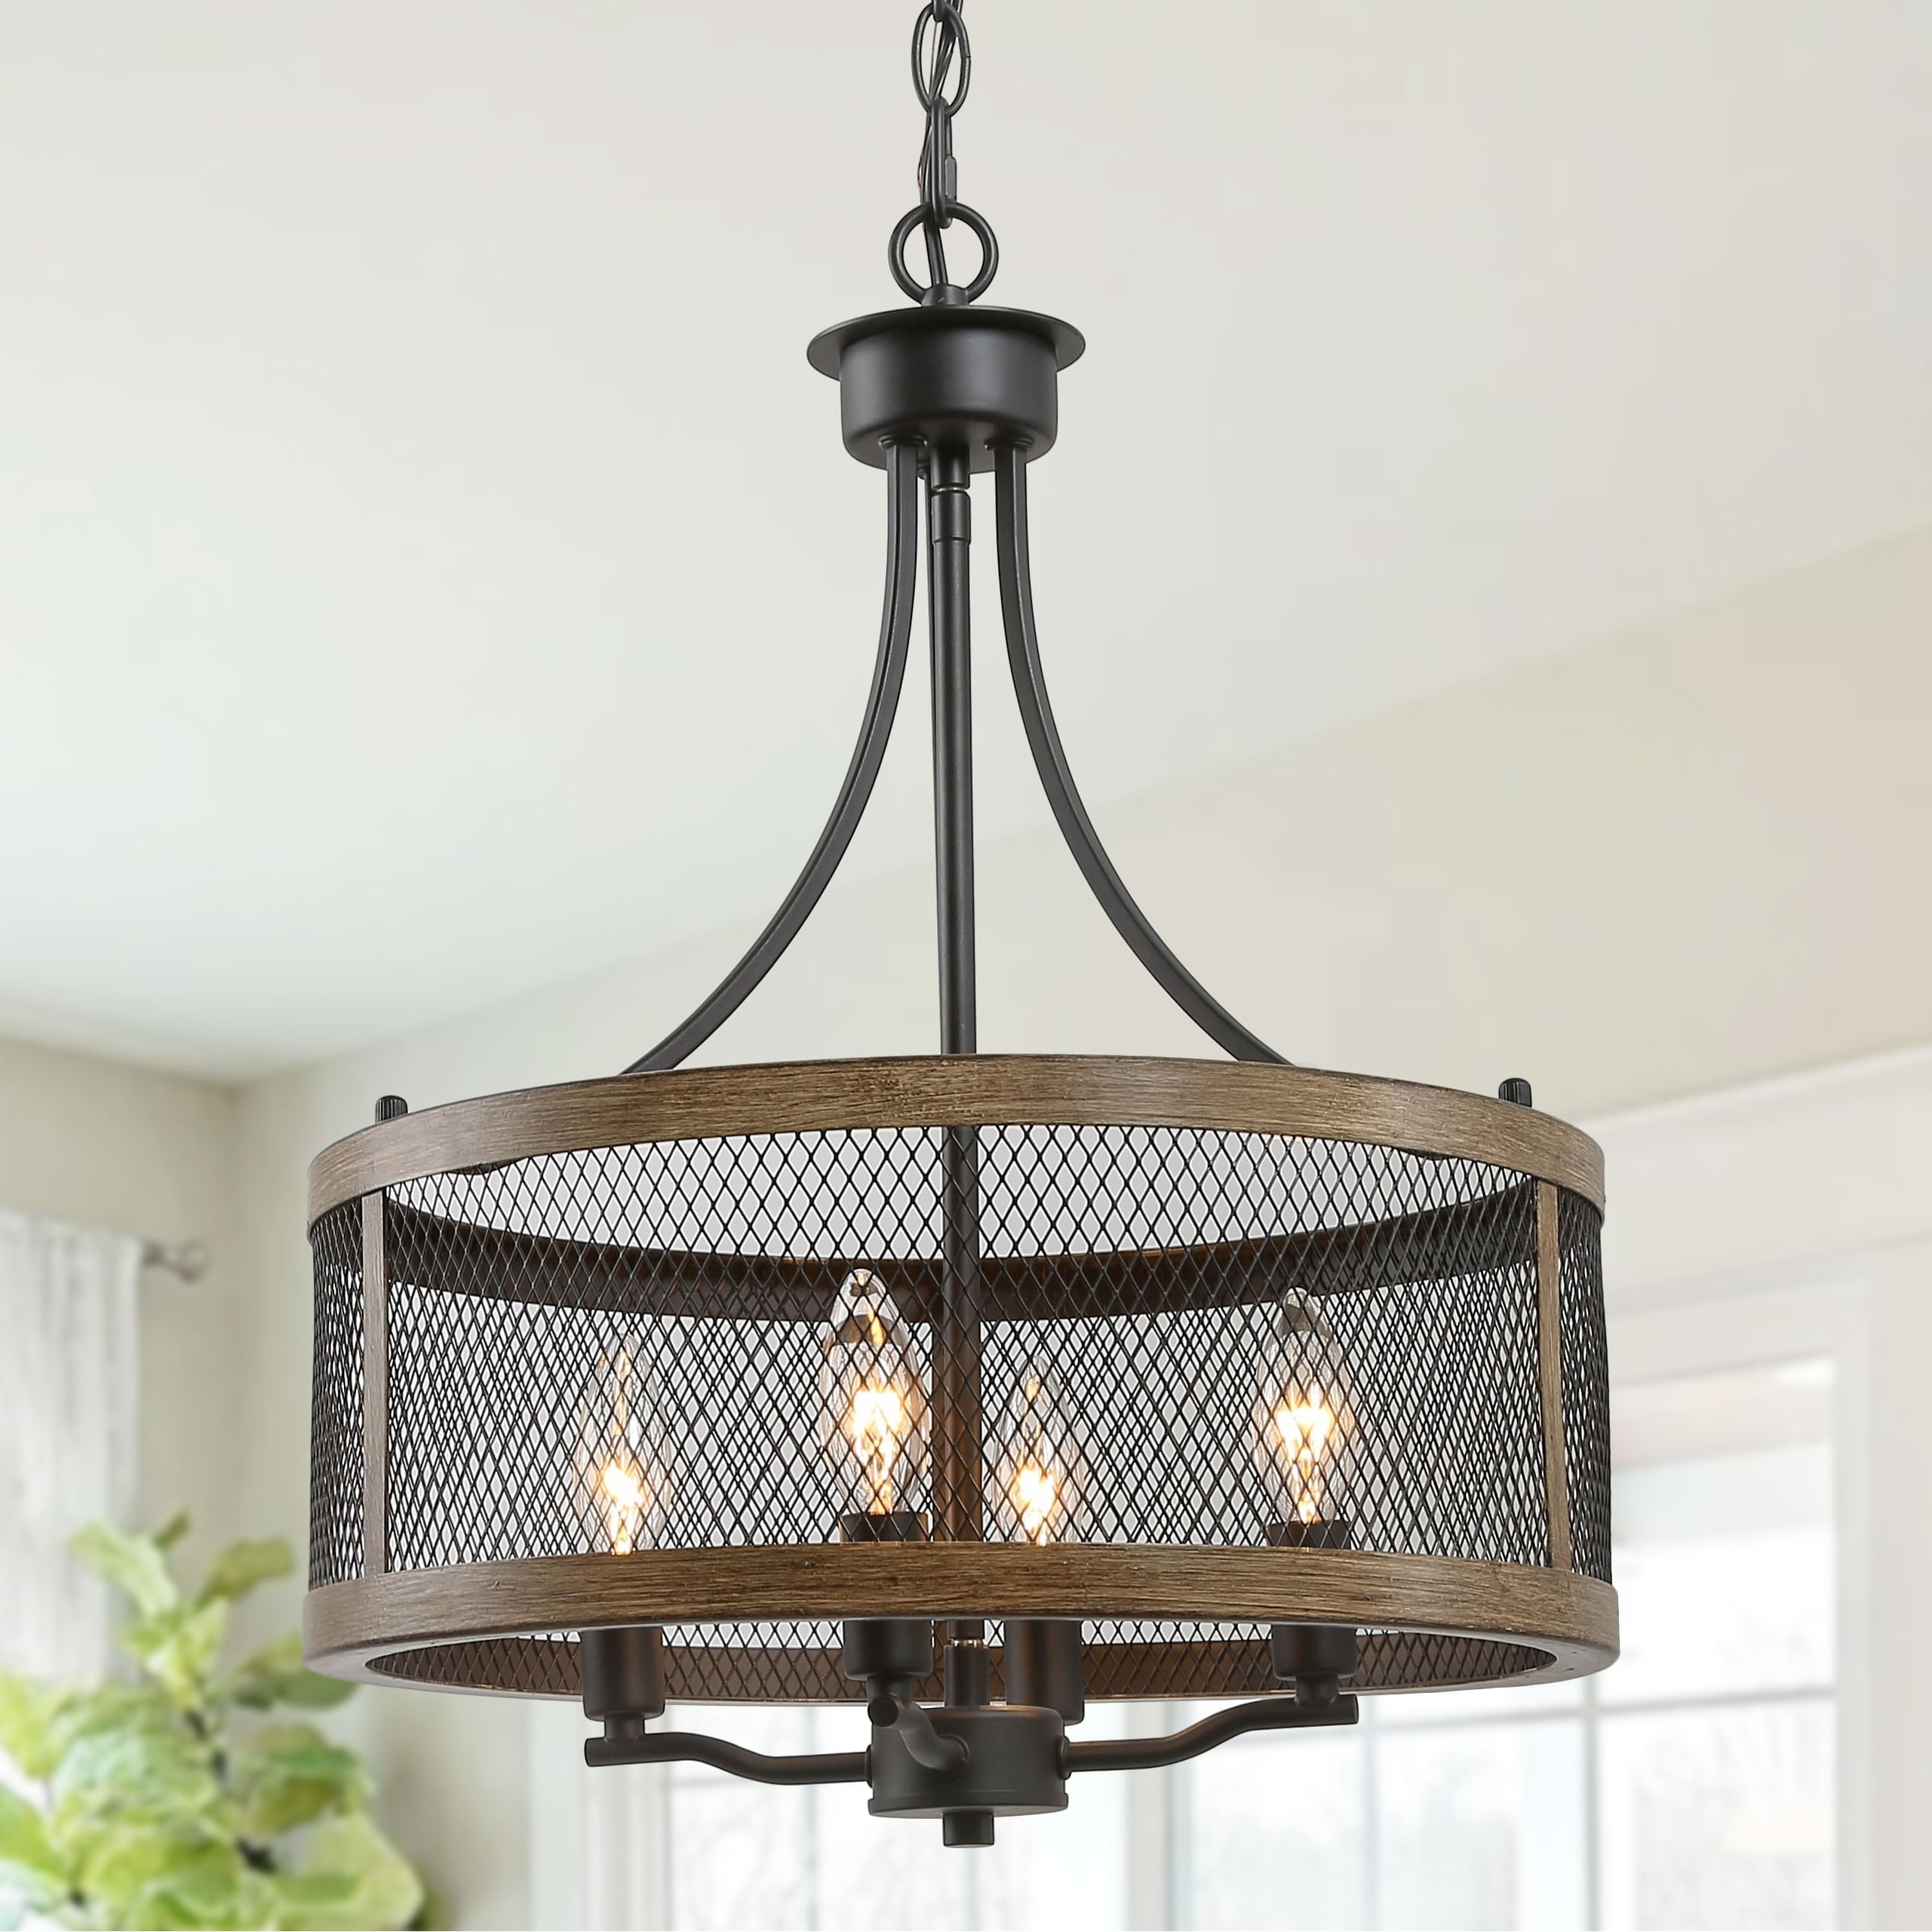 Rustic Chandelier 4 Lights Kitchen Island Lighting For Dining Room W16 Xh21